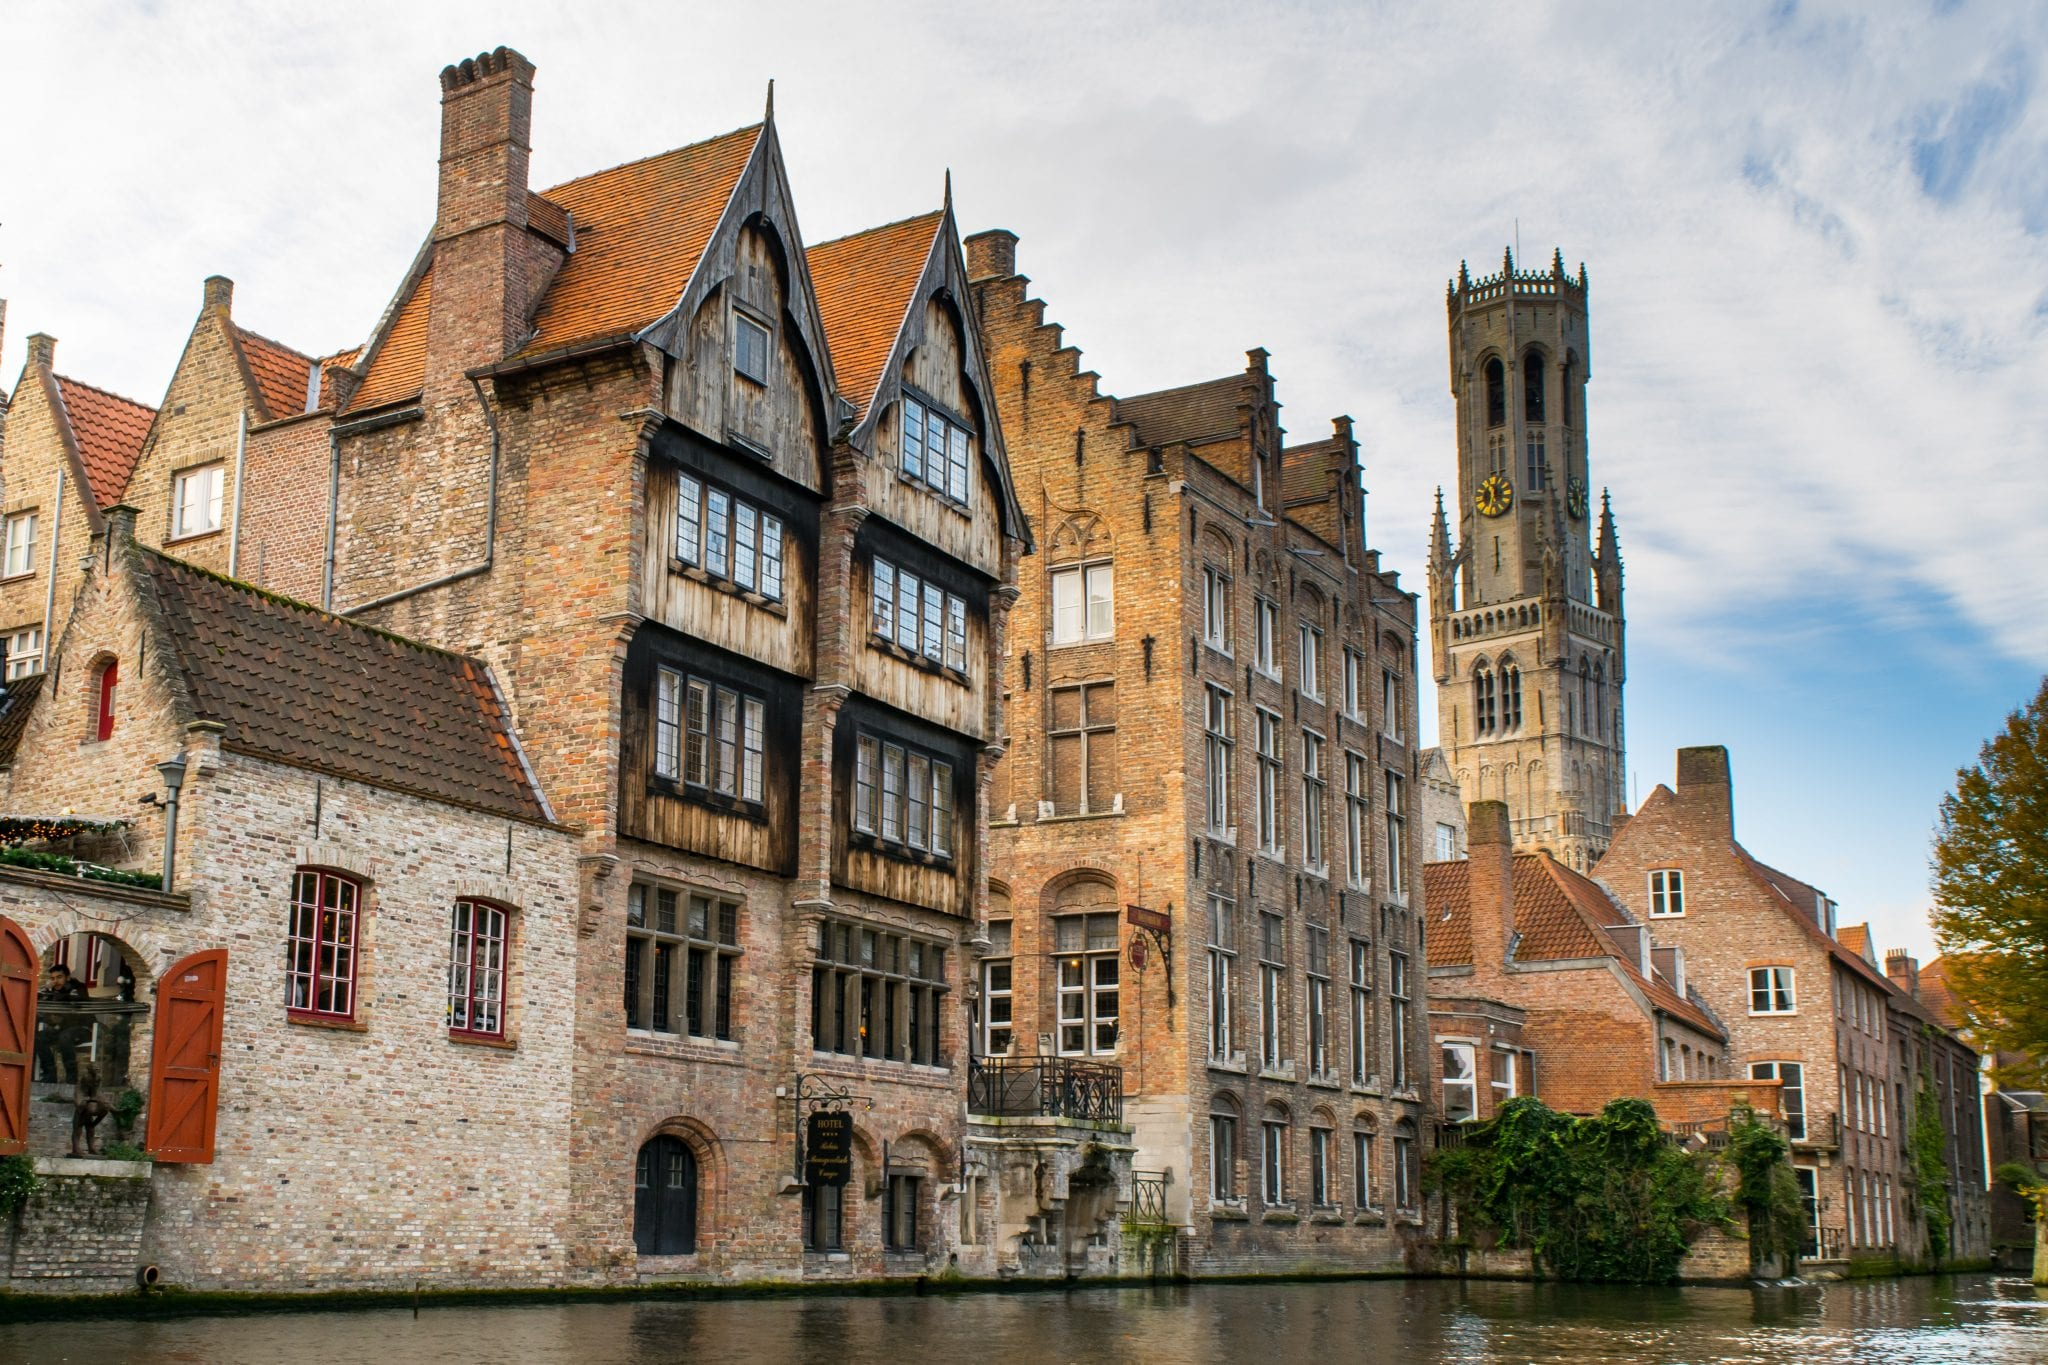 view of a wooden building along a canal in bruges belgium. canals are a big draw of bruges or ghent belgium